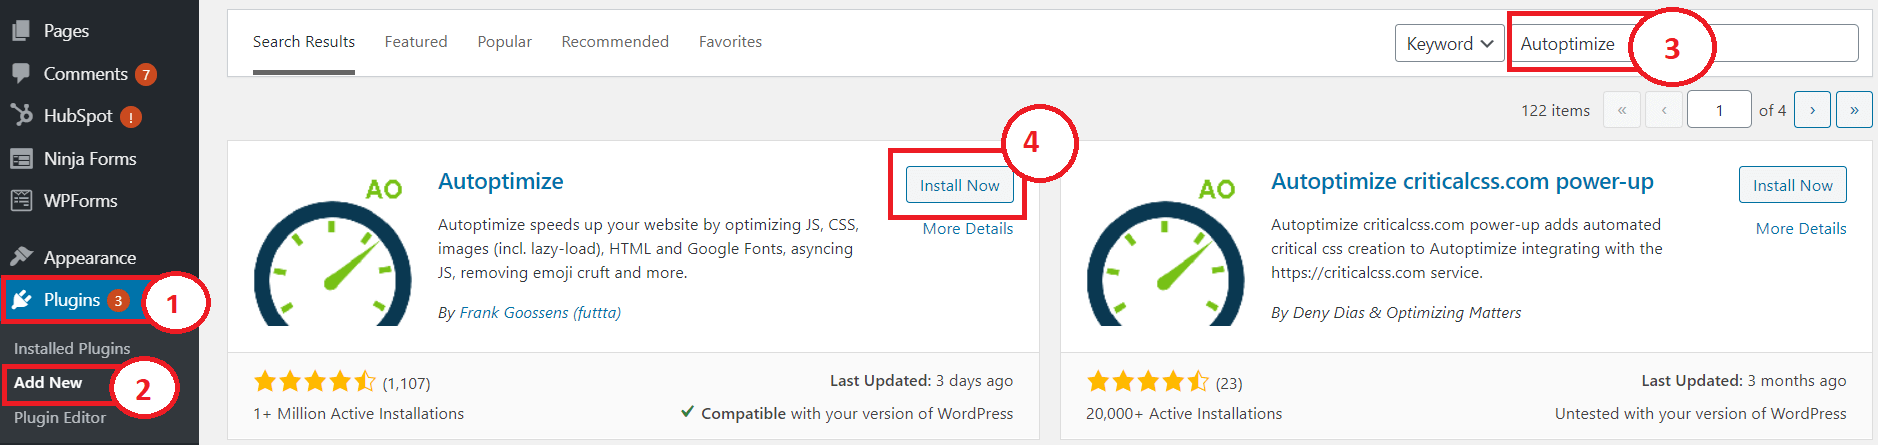 autoptimize plugin to speed up wordpress site